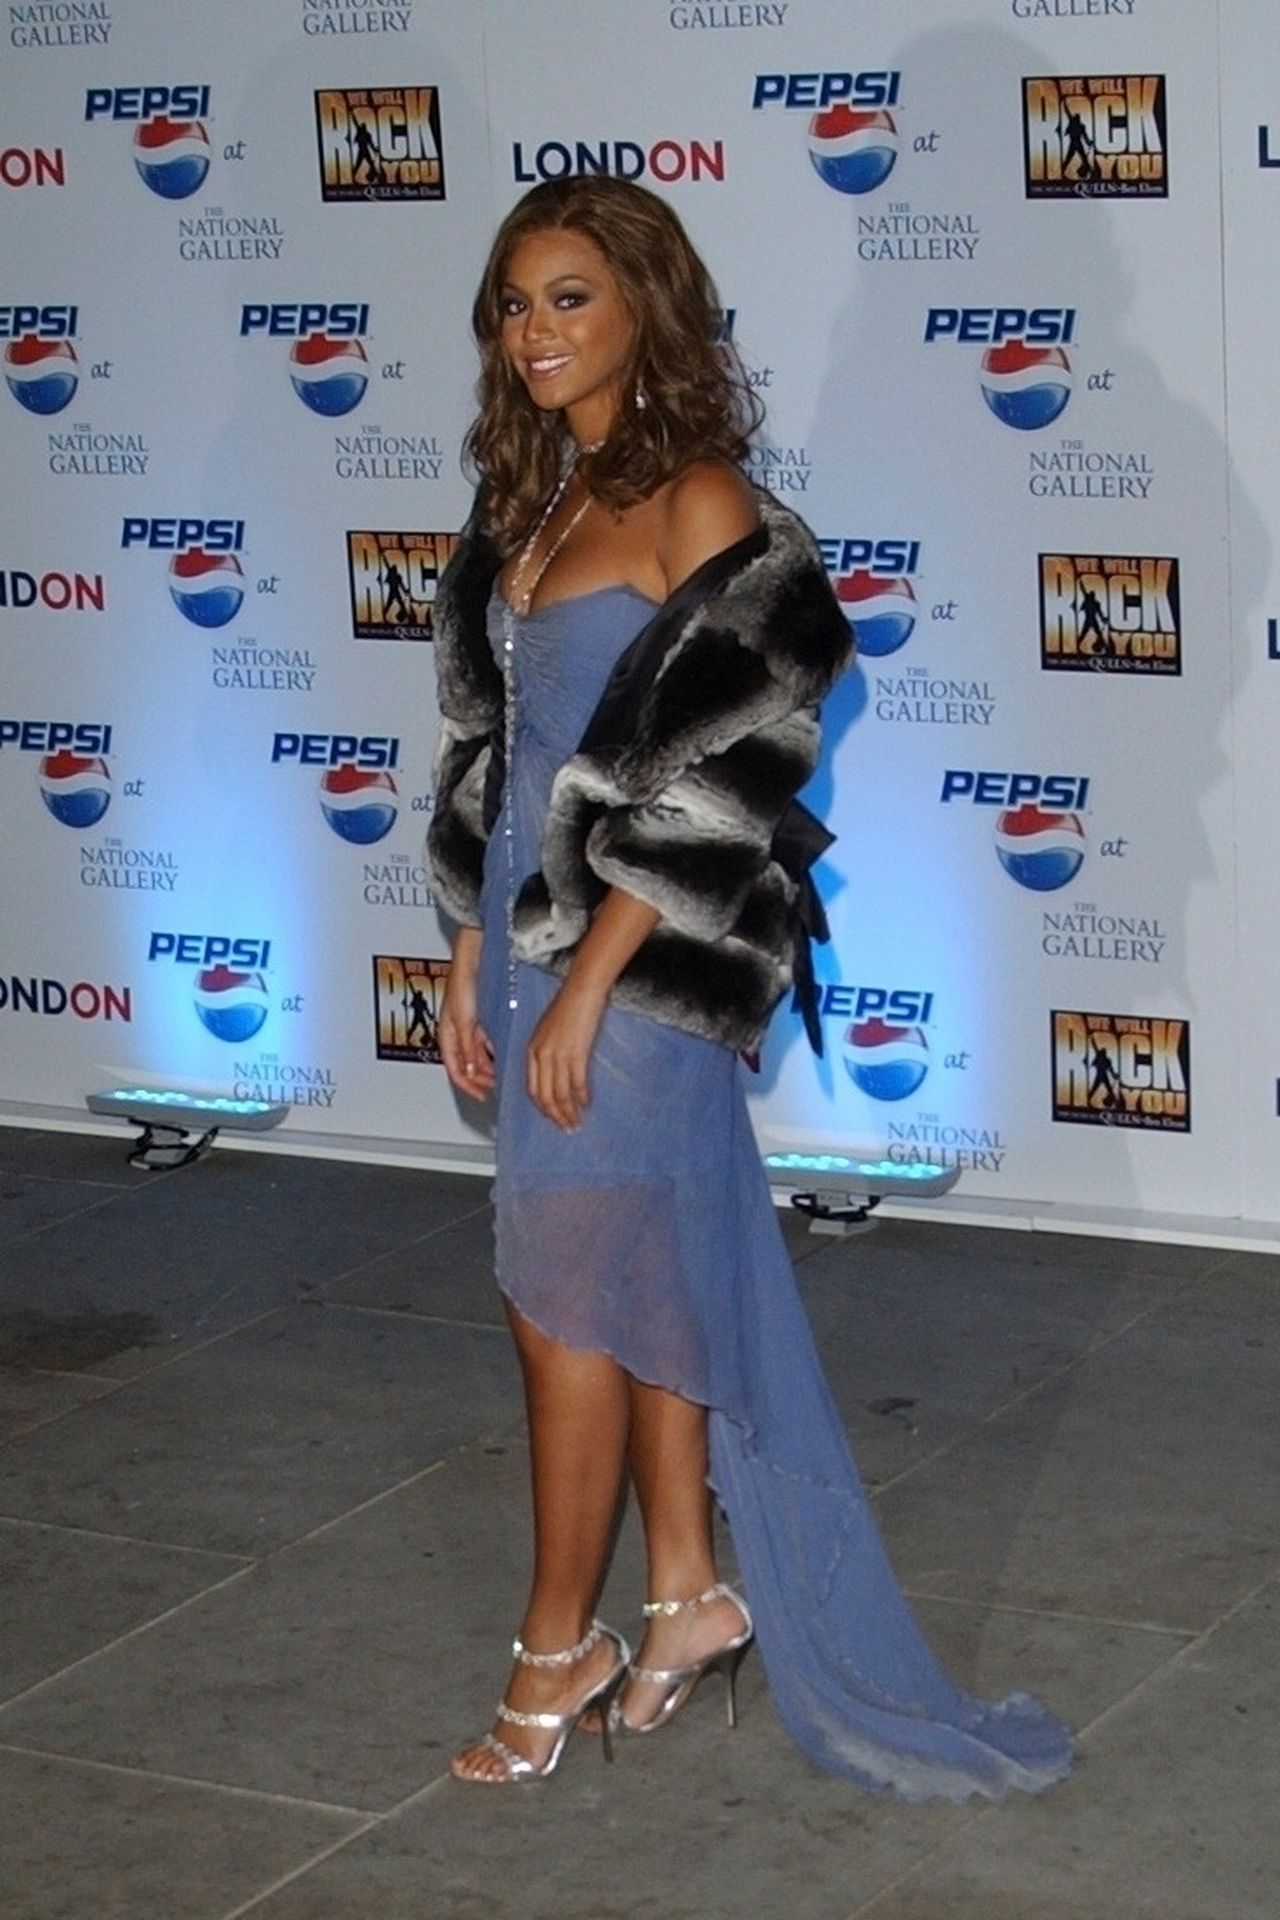 Beyonce Displays Her Cleavage At Pepsi Event In London 0004